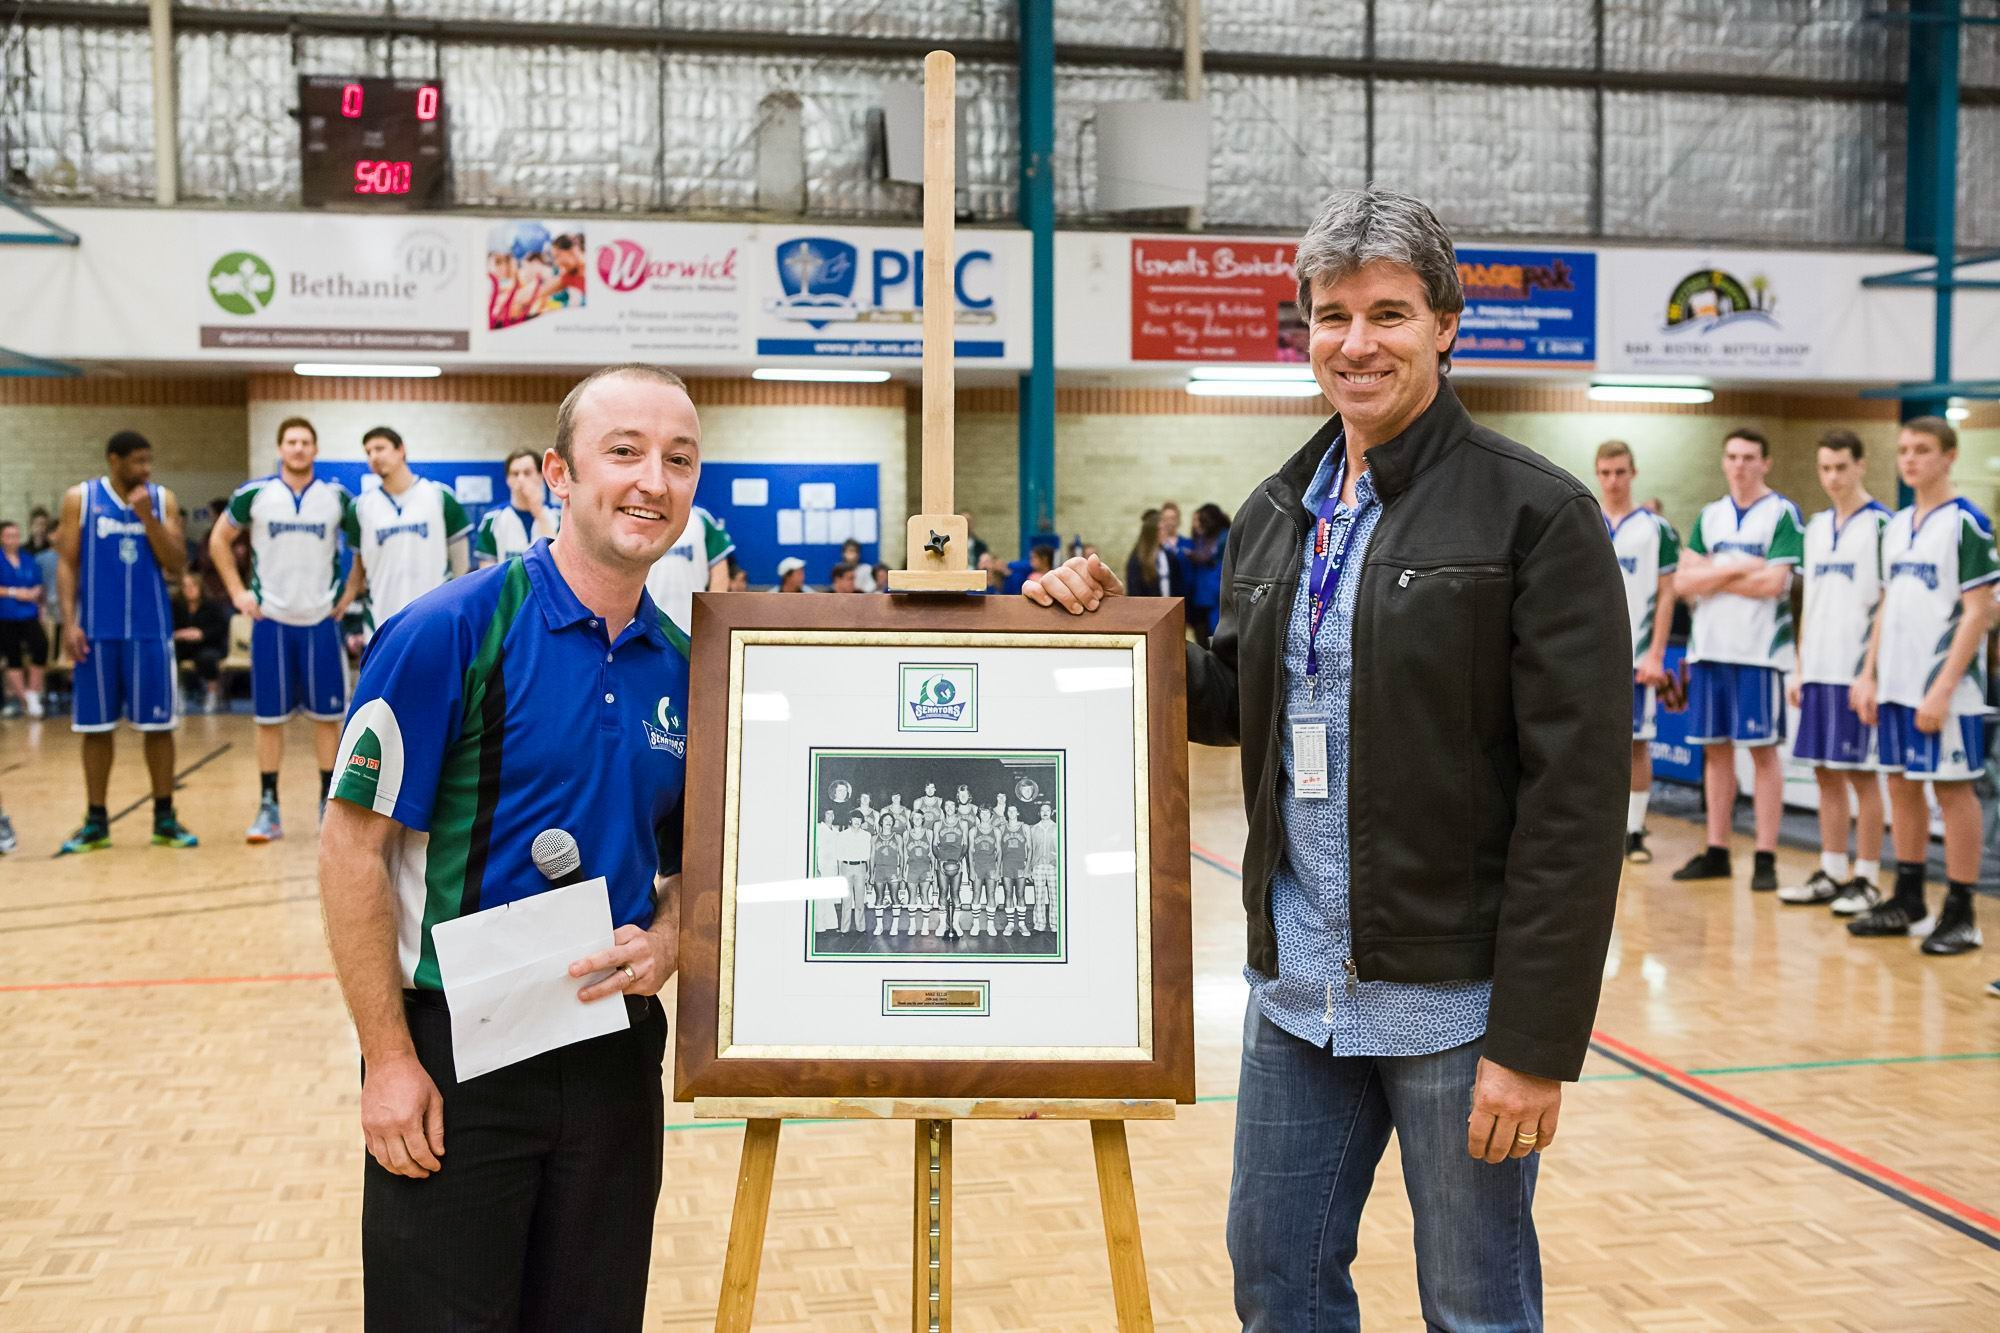 Chief executive Josh Nipps retires club legend Mike Ellis's number six jersey. |Picture: Christian Ingram